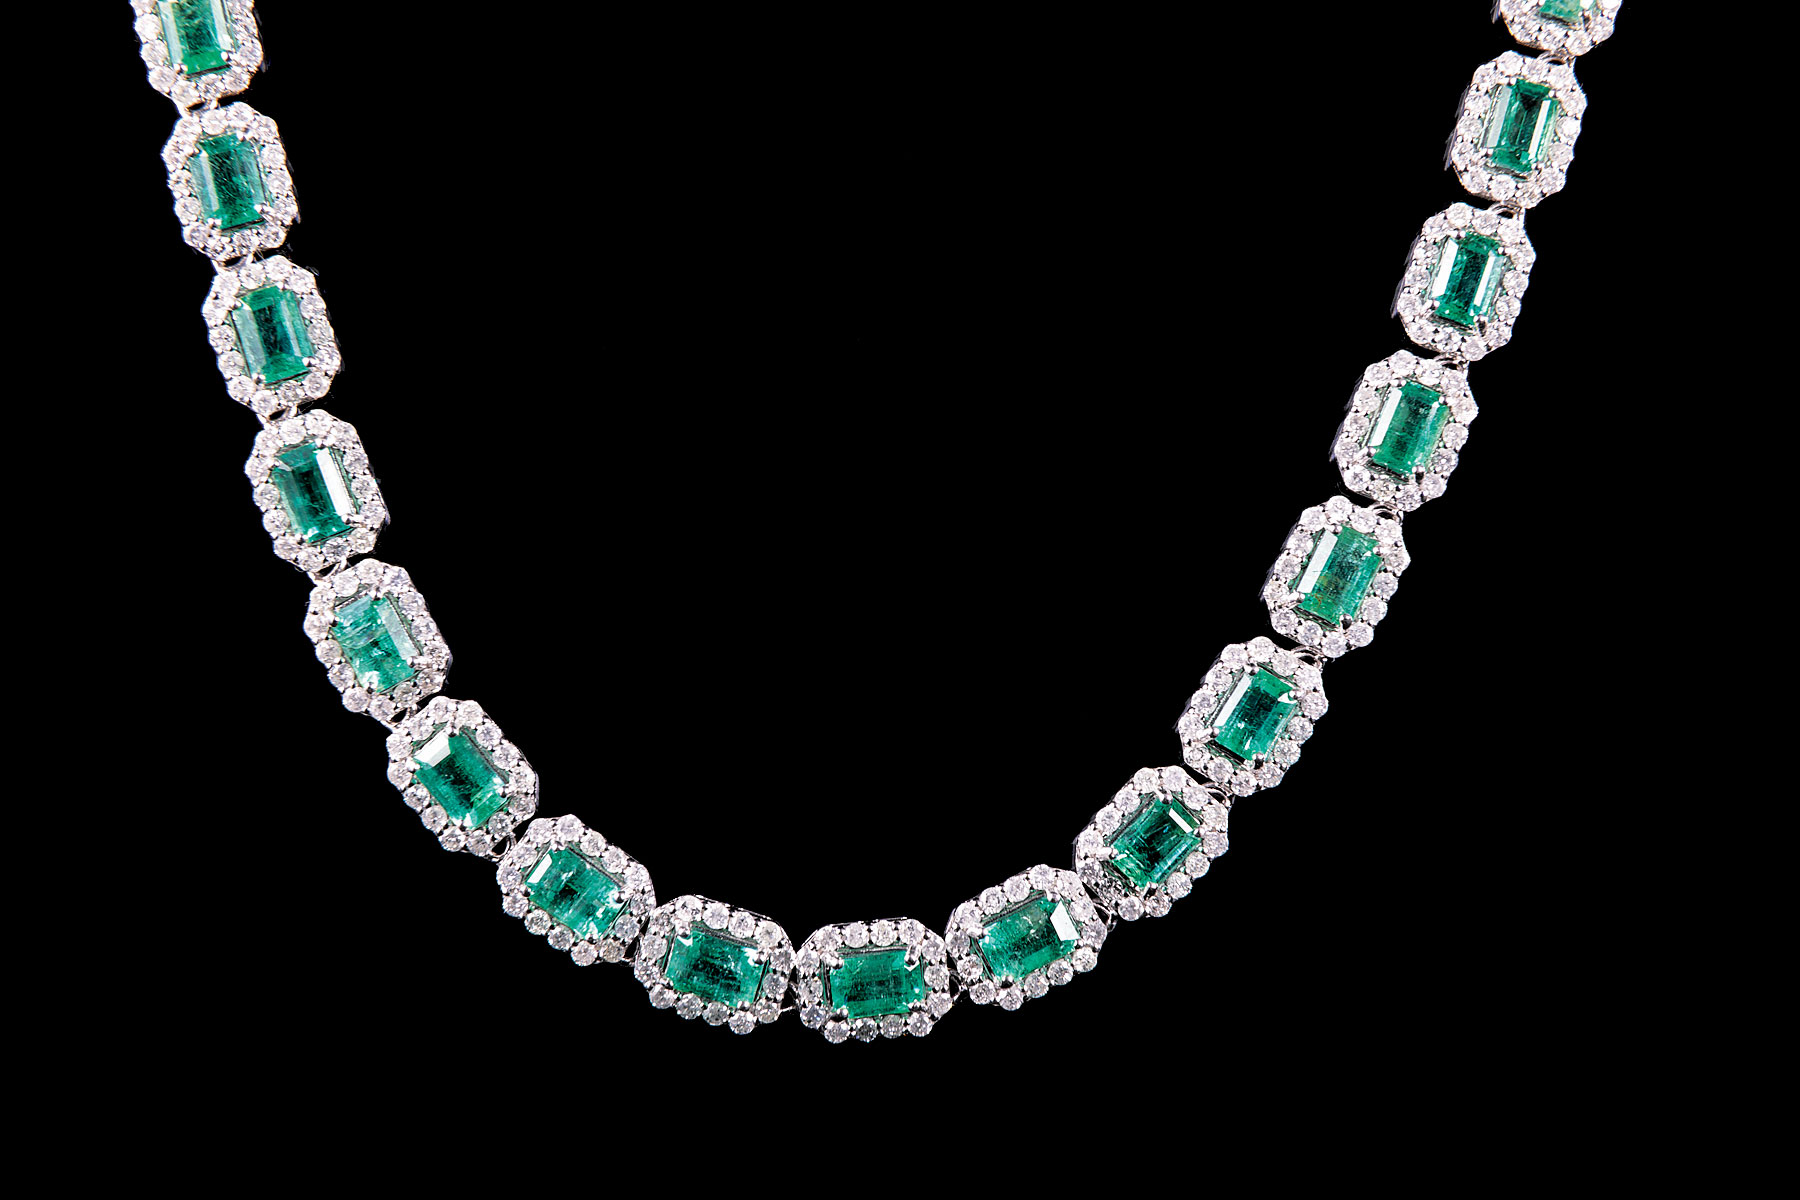 Lot 579 - 14 kt. White Gold, Emerald and Diamond Necklace , 41 prong set rectangular step cut natural